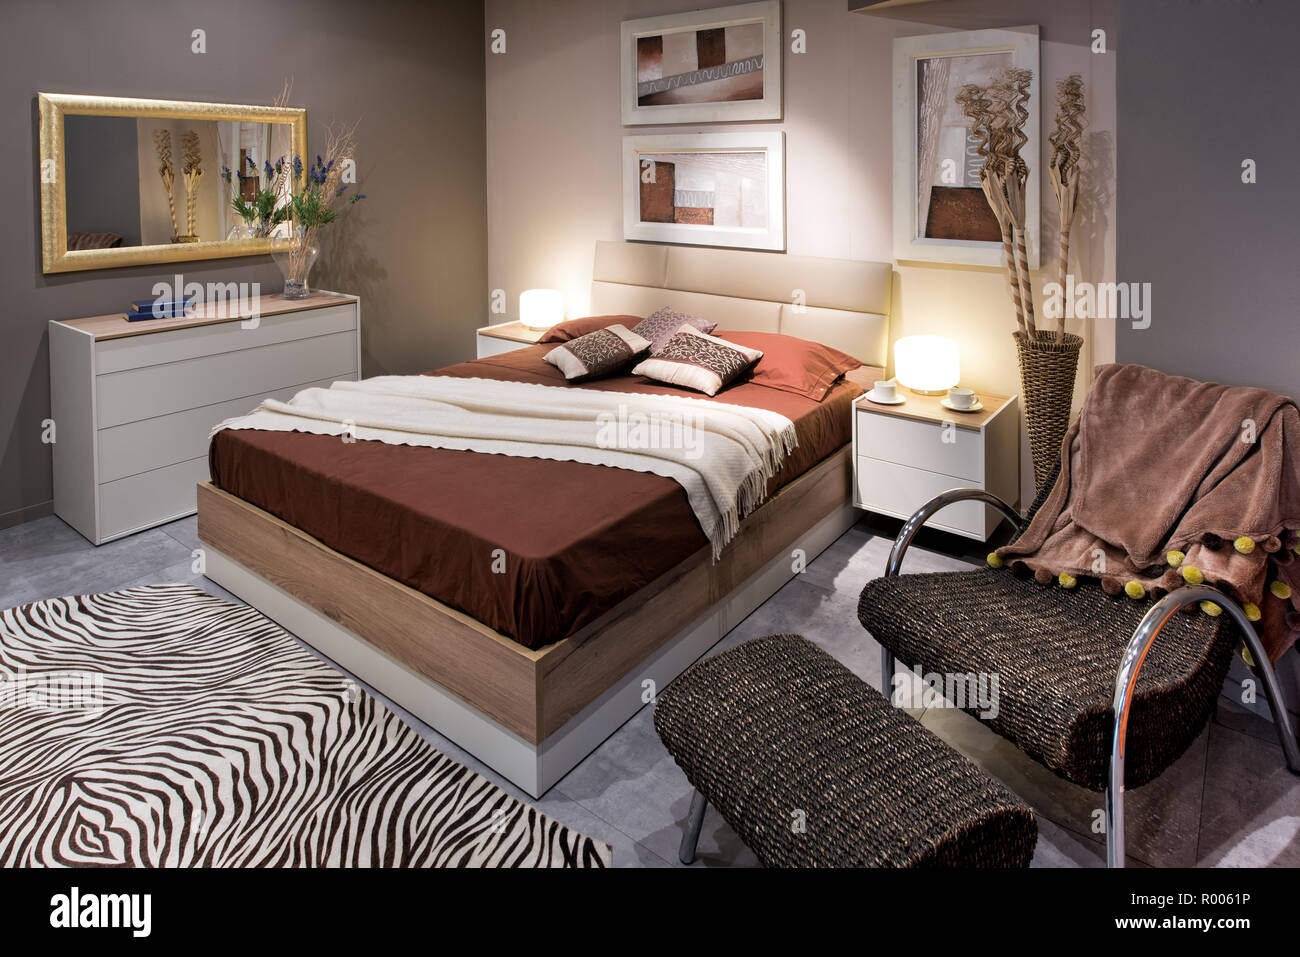 Double Bedroom Design Concept With High Brown Bed And Comfortable Armchair With Ottoman Zebra Carpet On The Floor And Paintings On The Walls Stock Photo Alamy